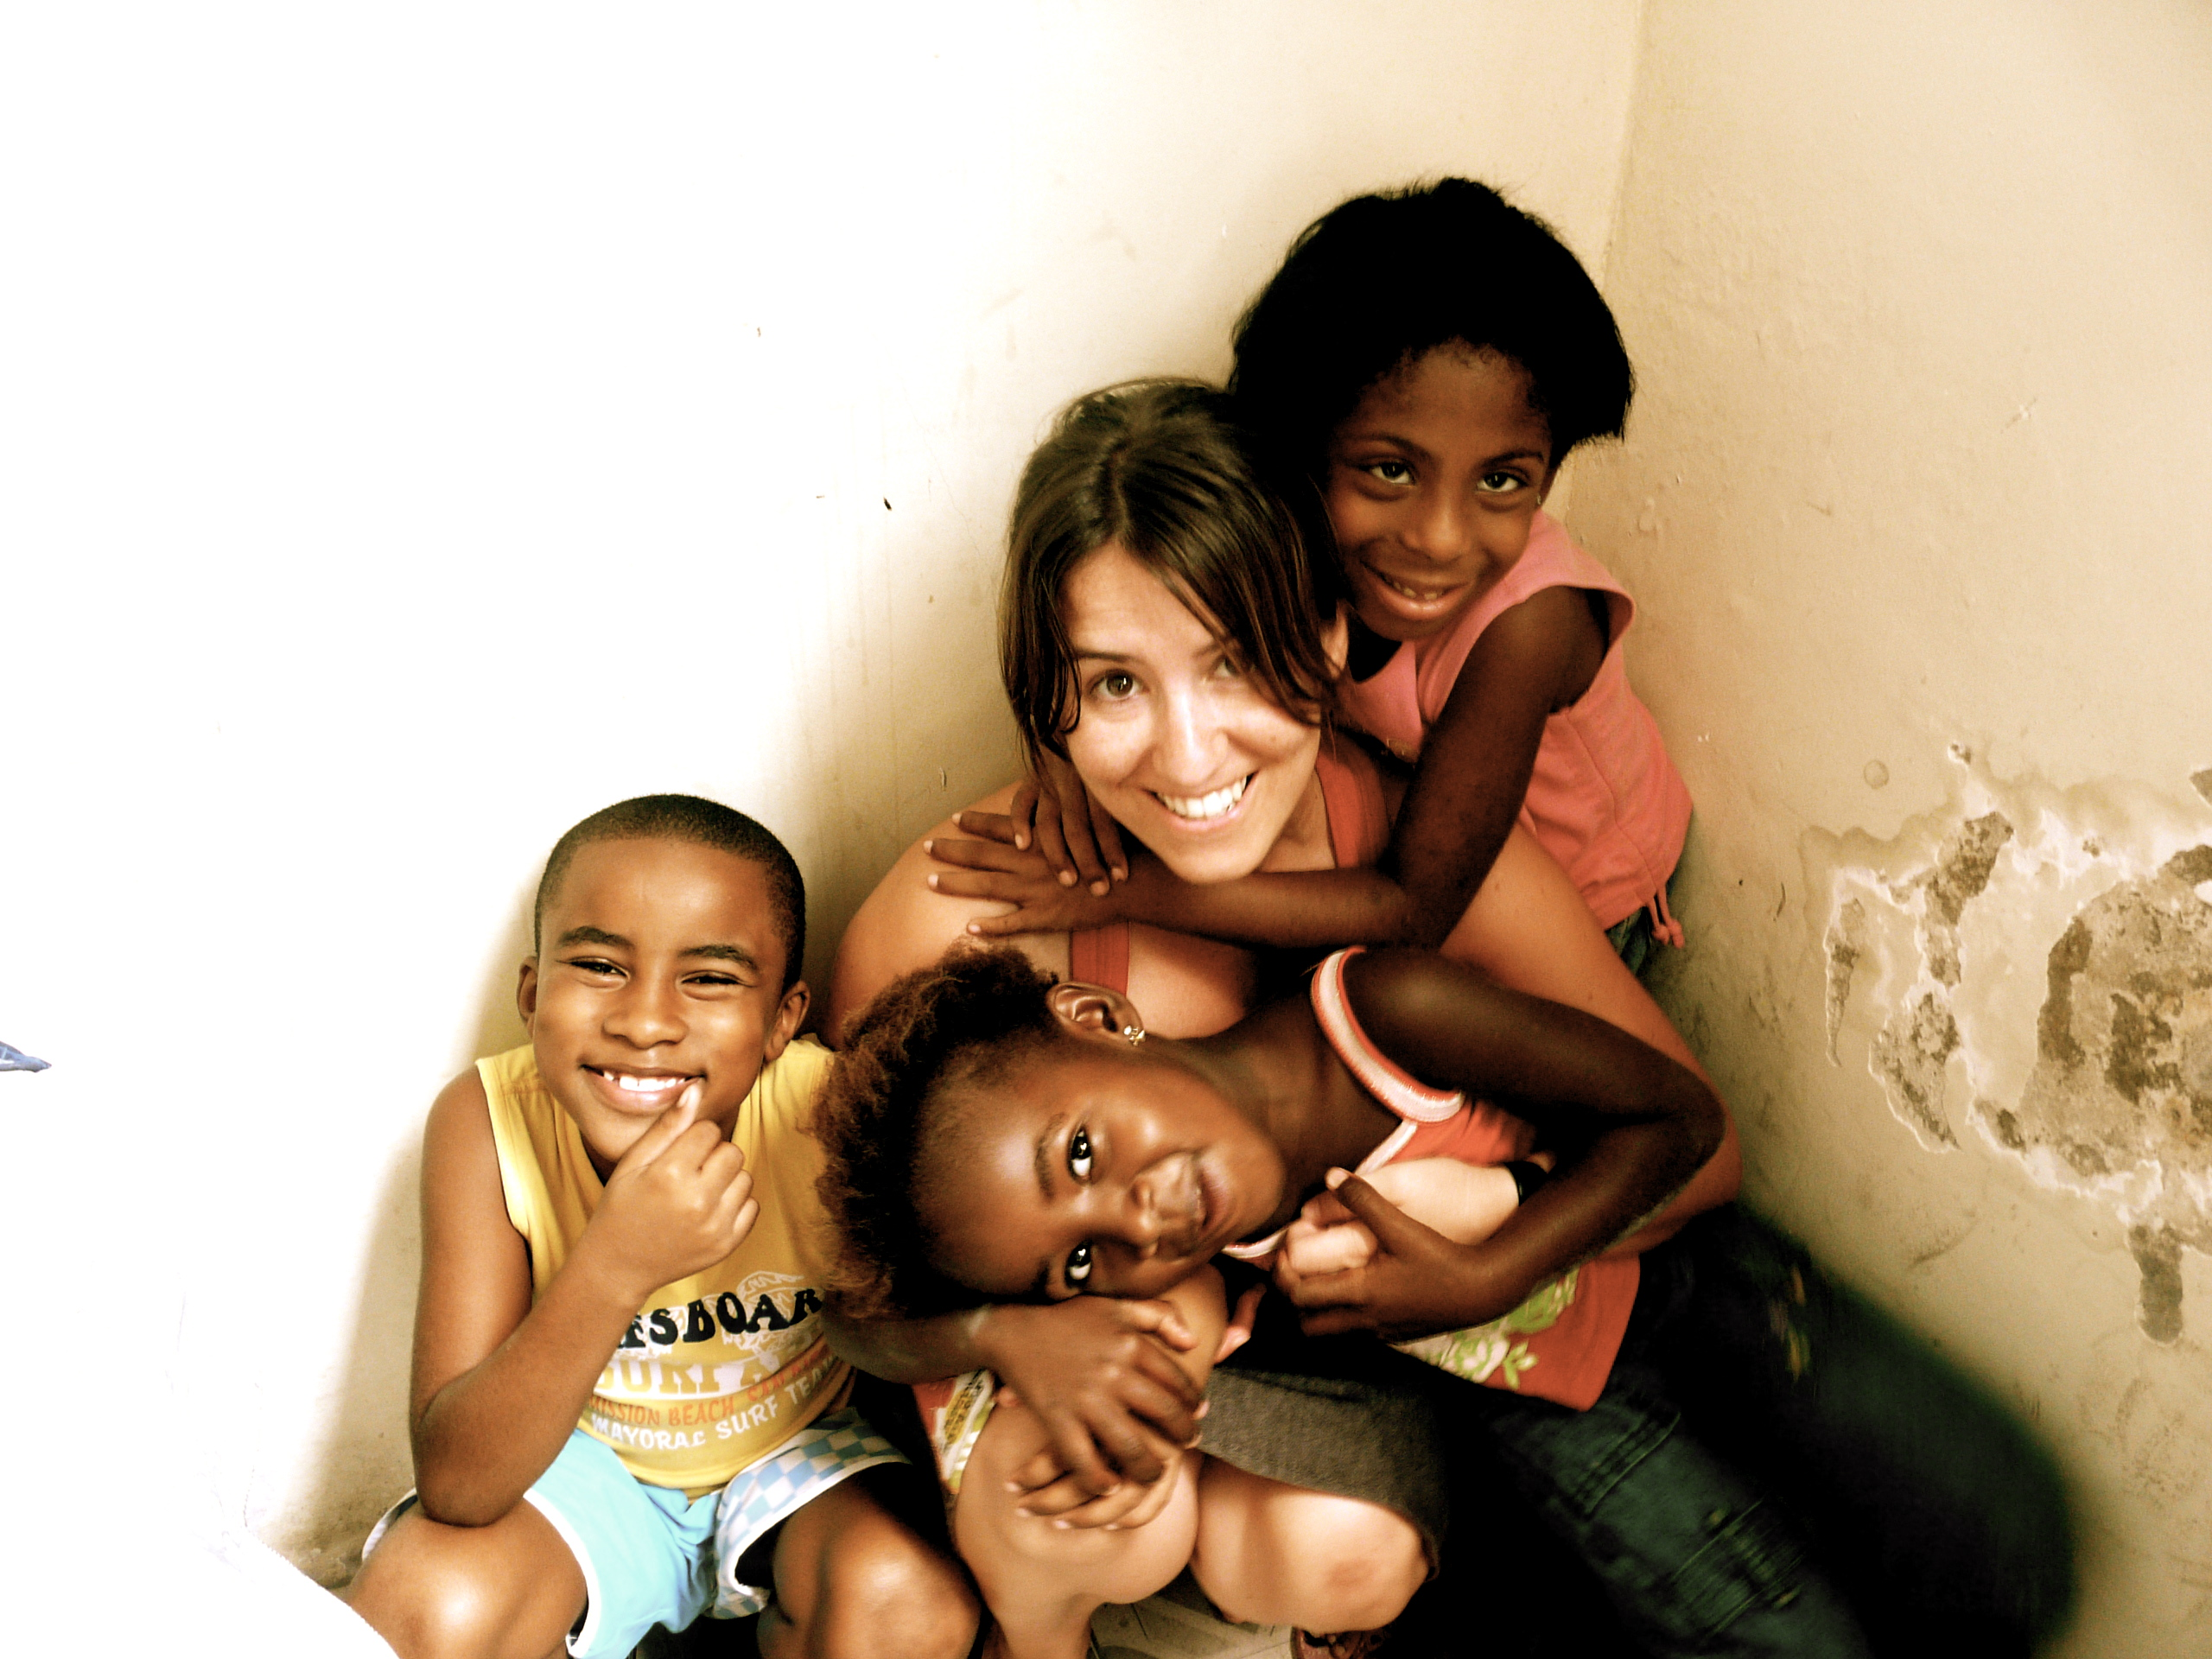 Reya Rodrigues playing with 3 children. She recommends this experience to everyone